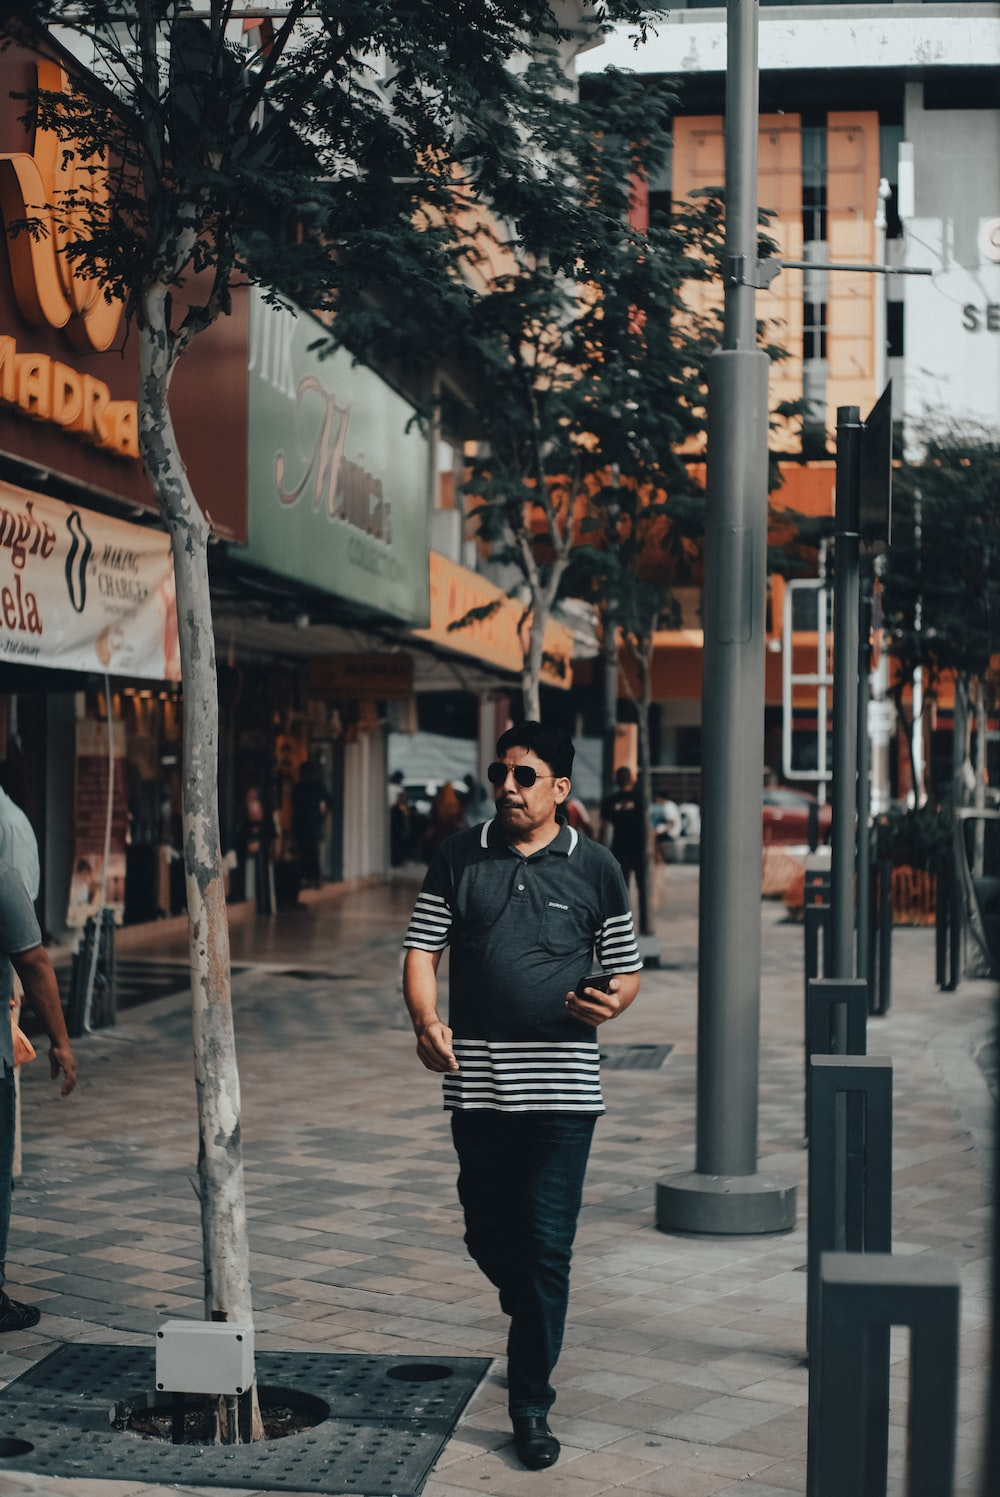 man in black and white striped long sleeve shirt and black pants standing on sidewalk during